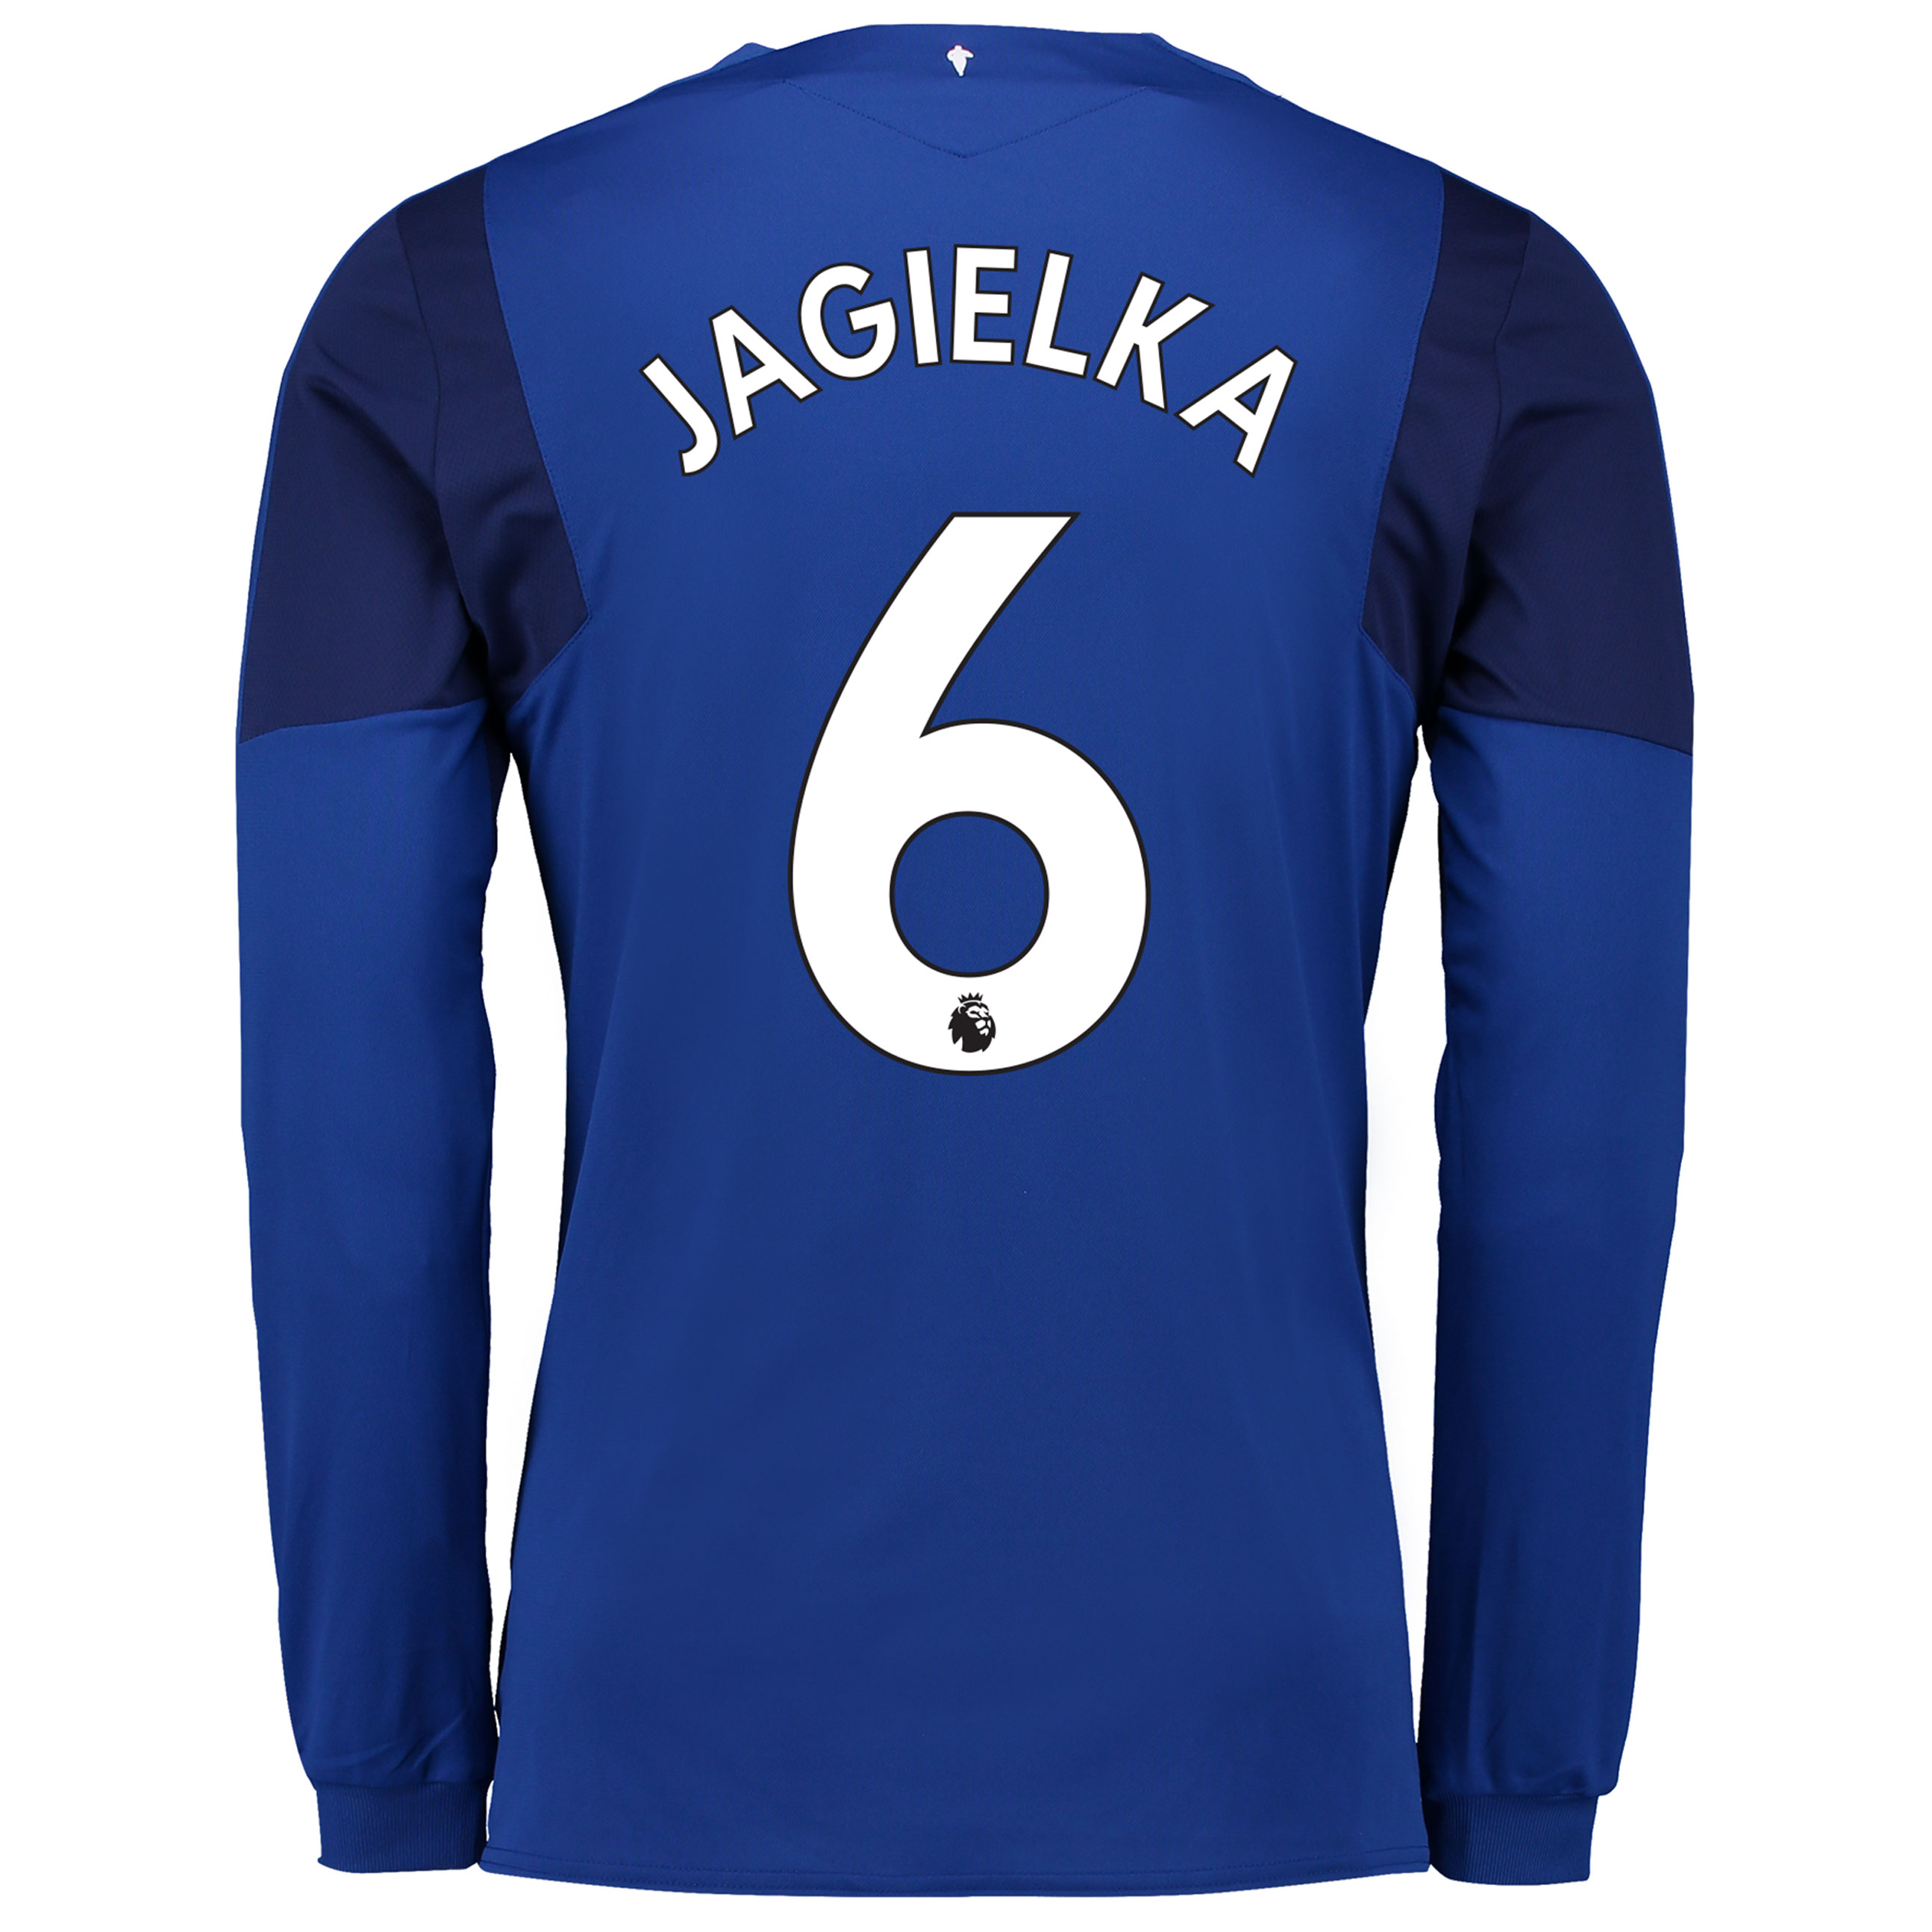 Everton Home Shirt 2017/18 - Junior - Long Sleeved with Jagielka 6 pri